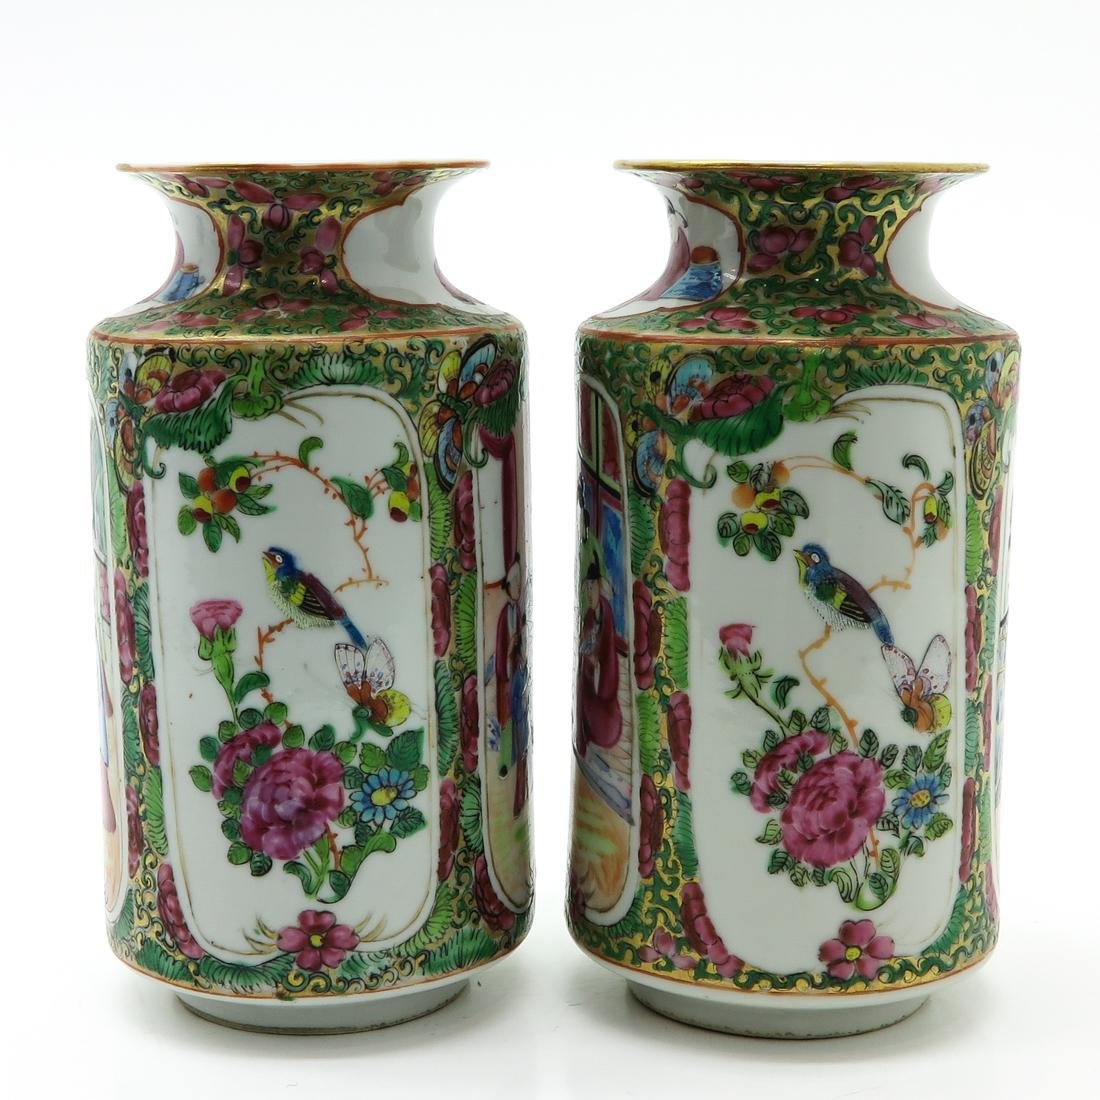 Pair of Cantonese Vases - 2